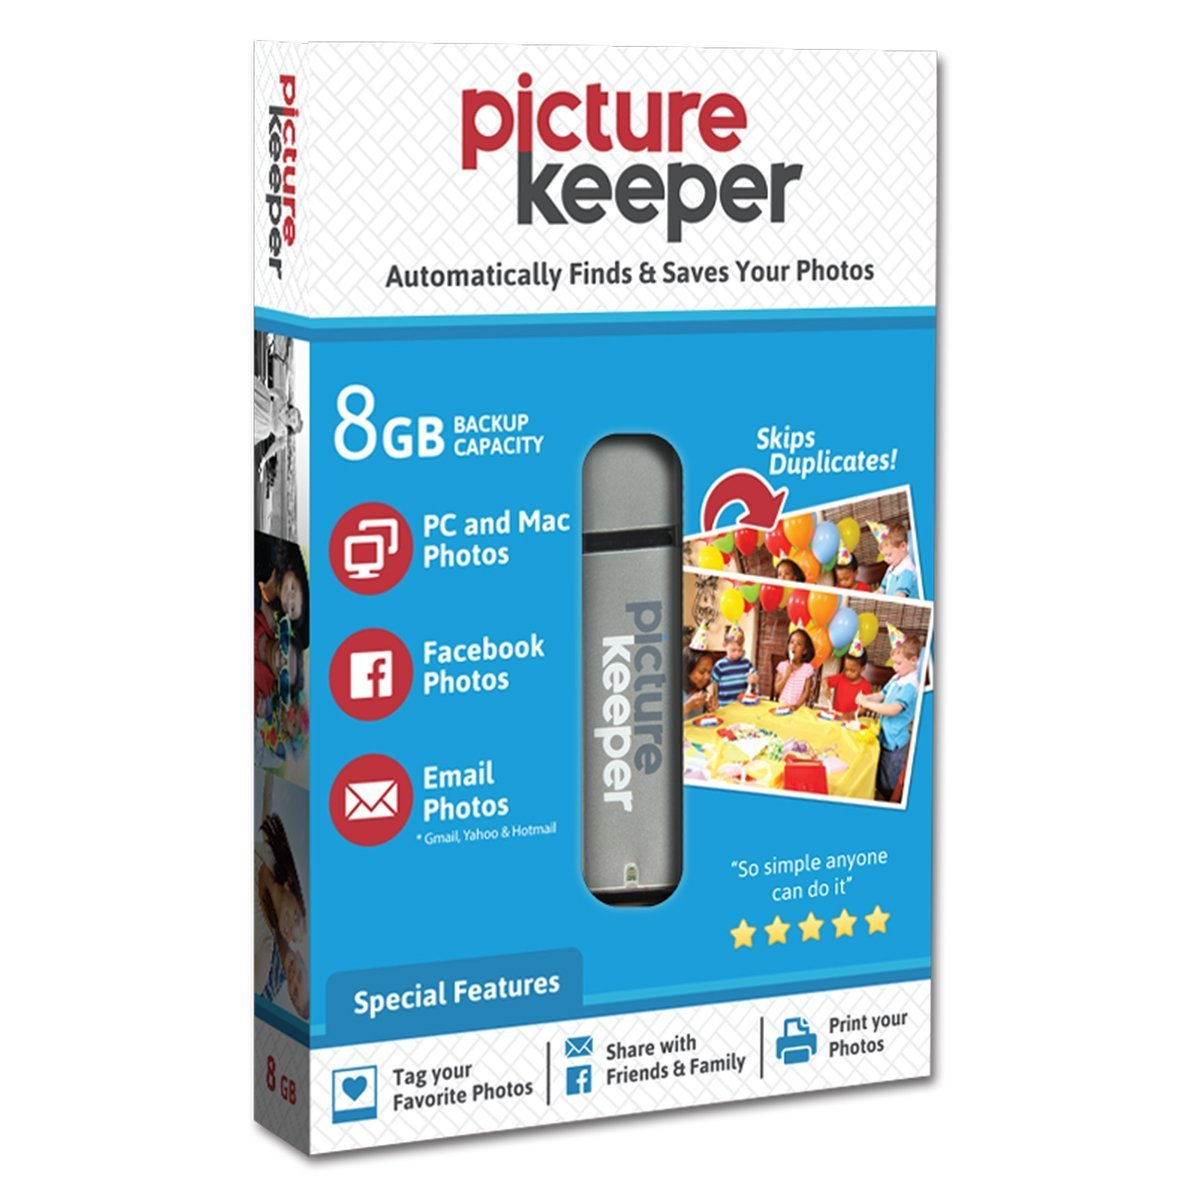 Picture Keeper Portable Flash Drive Photo Backup USB Drive 8GB Simplified IT PK8gb